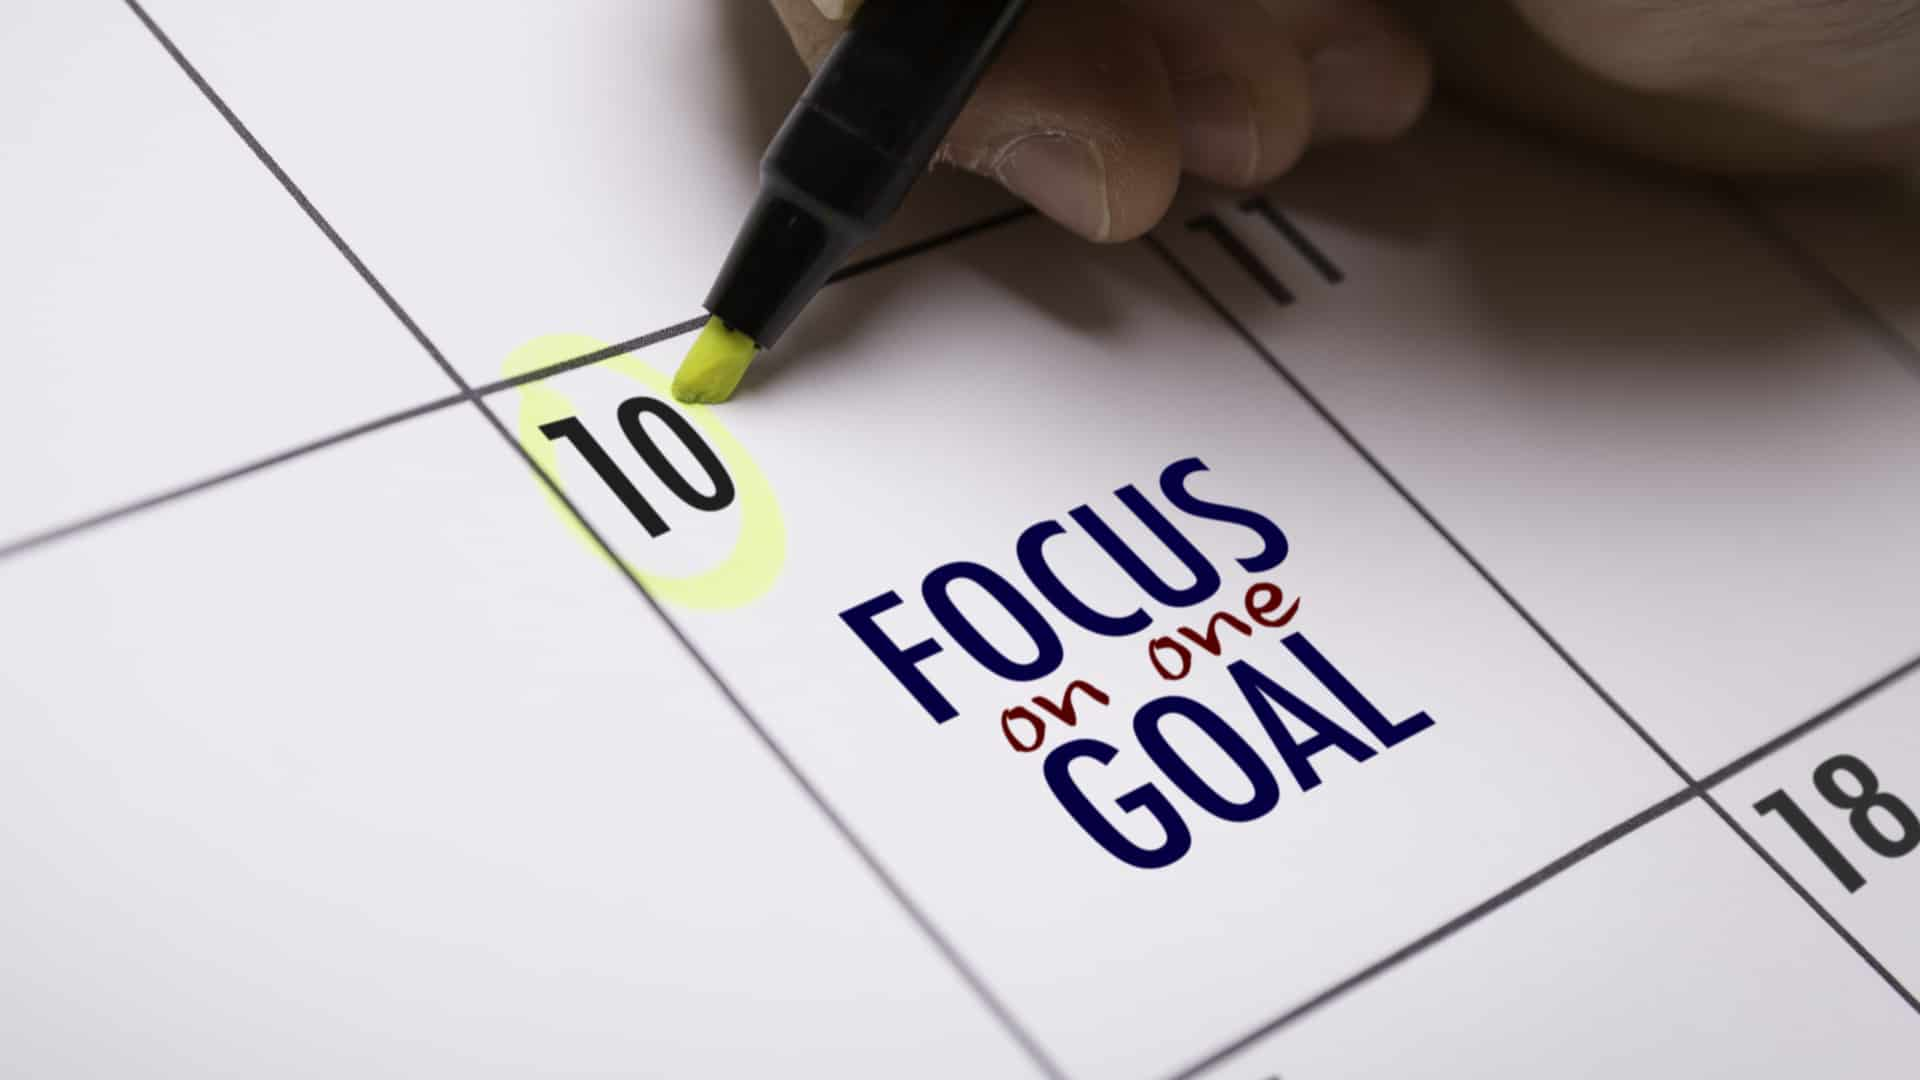 Focus on One Goal